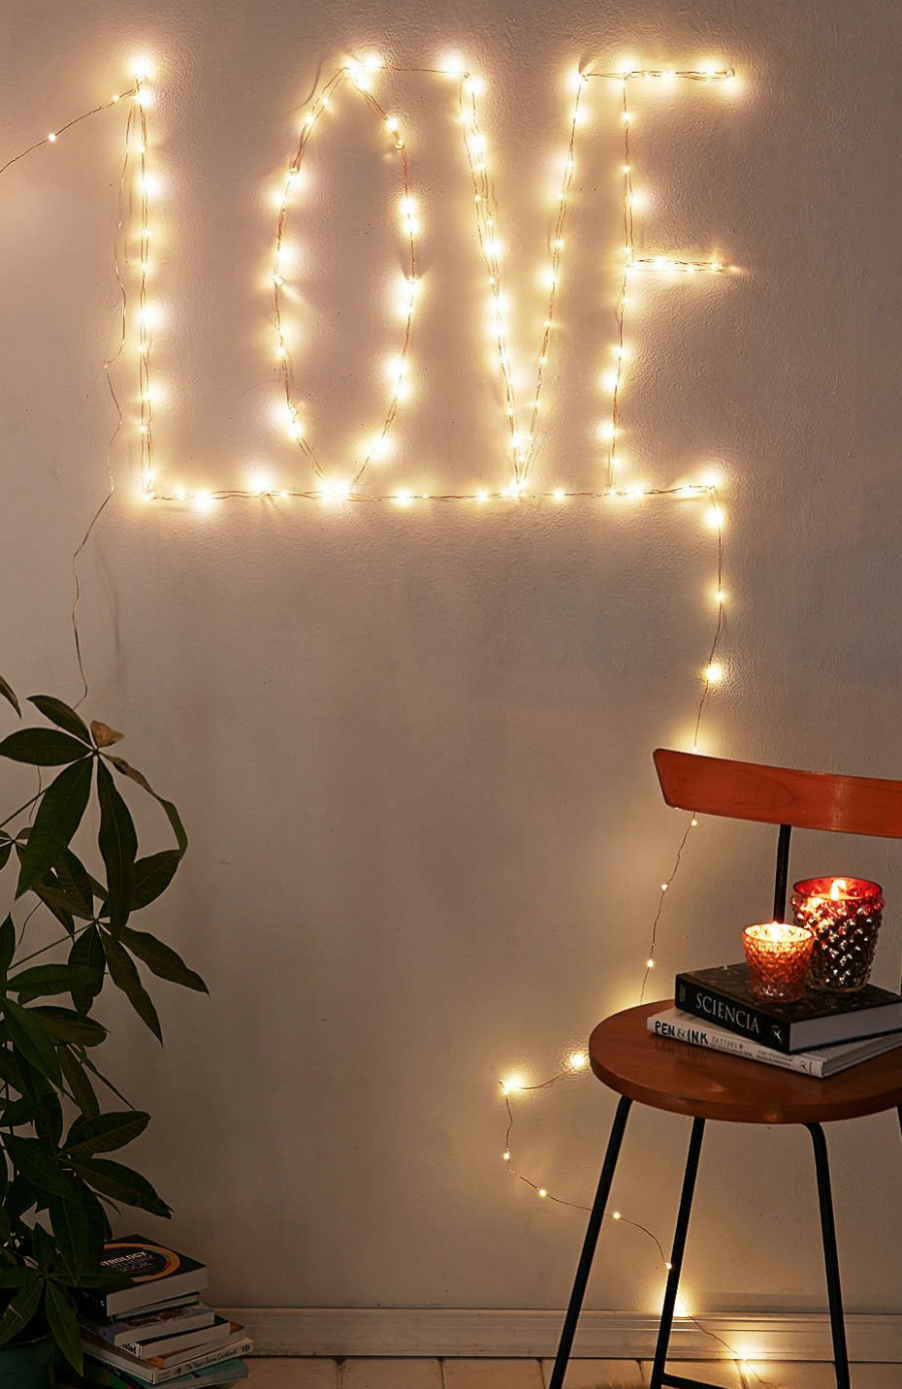 9 Ways to Create a Romantic Ambiance with String Lights - wall decor ideas with lights